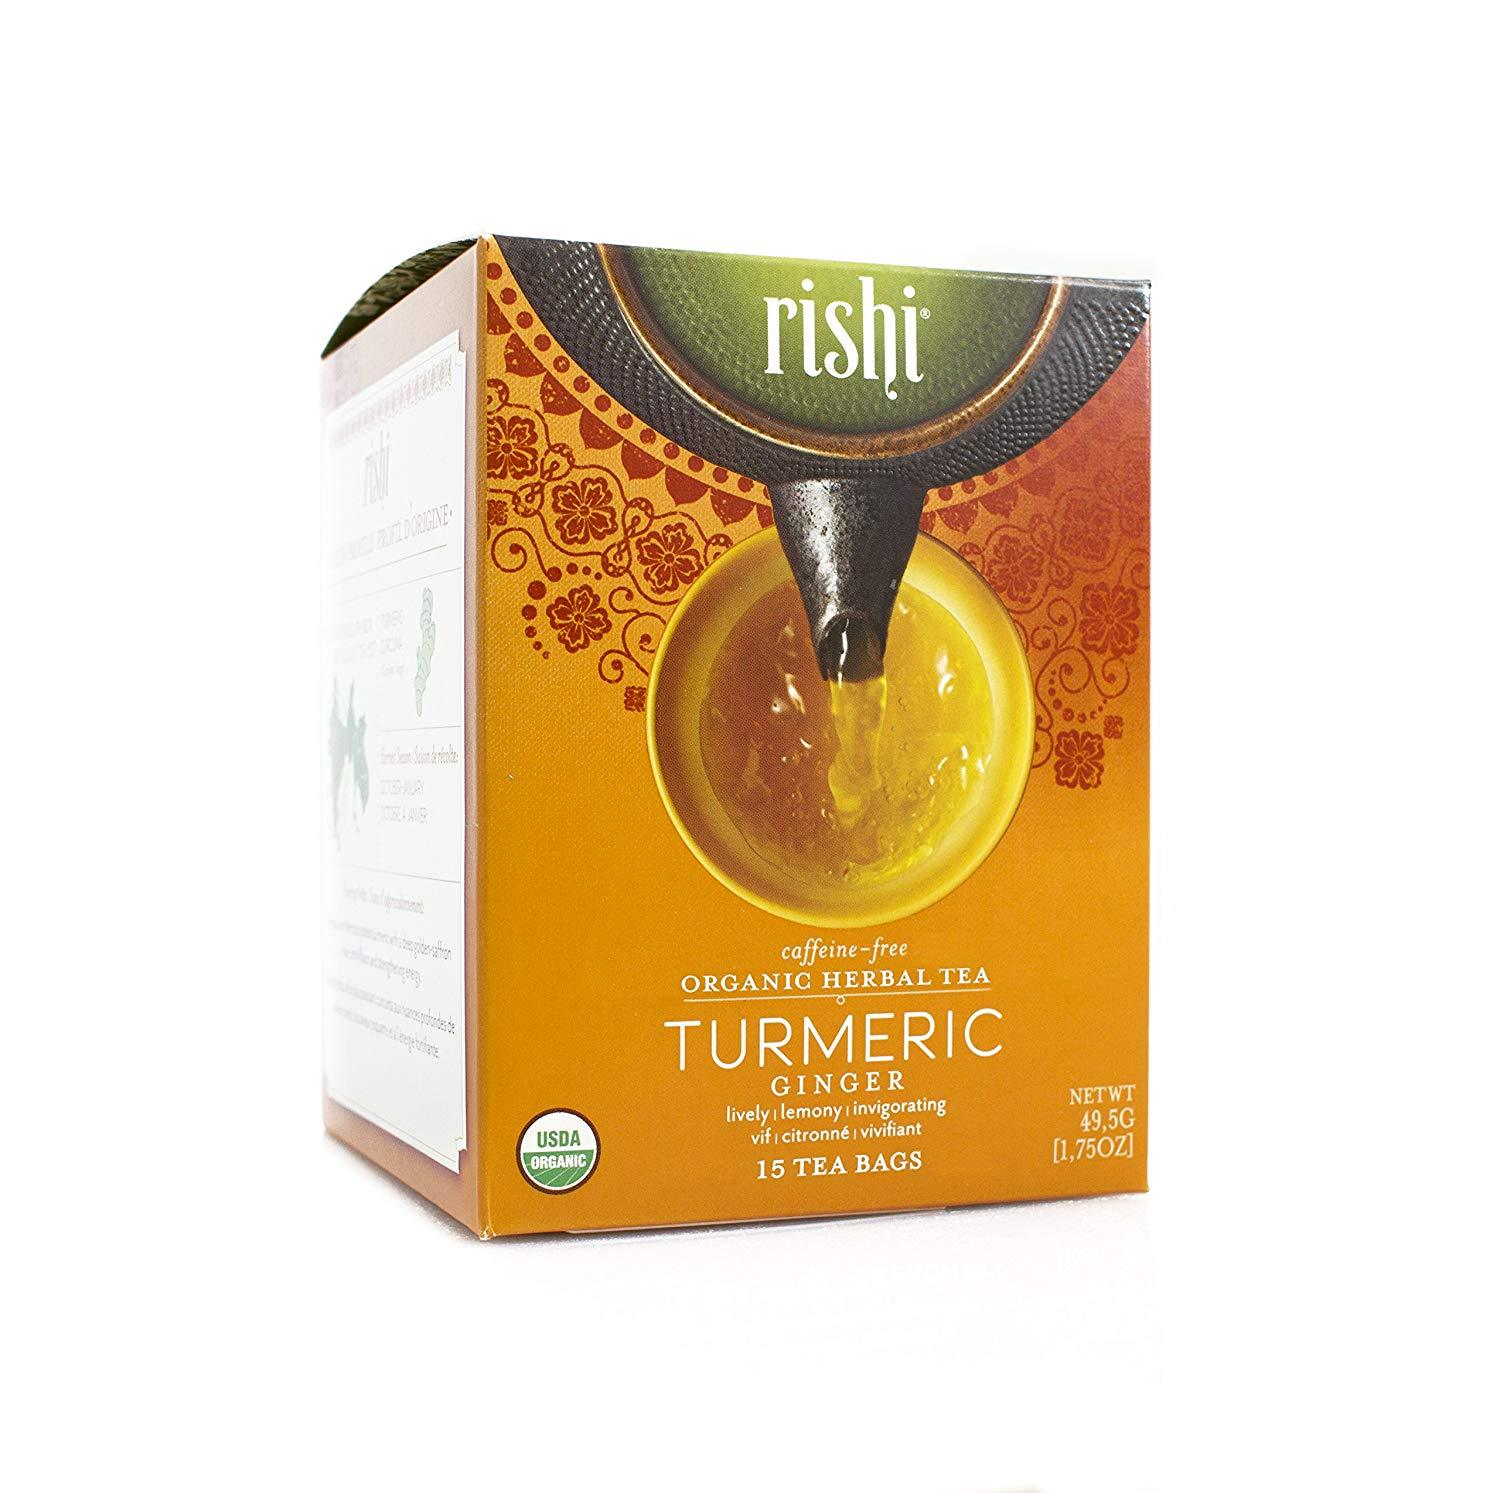 Food & Drink - Rishi Tumeric Ginger Tea - 15 Bags